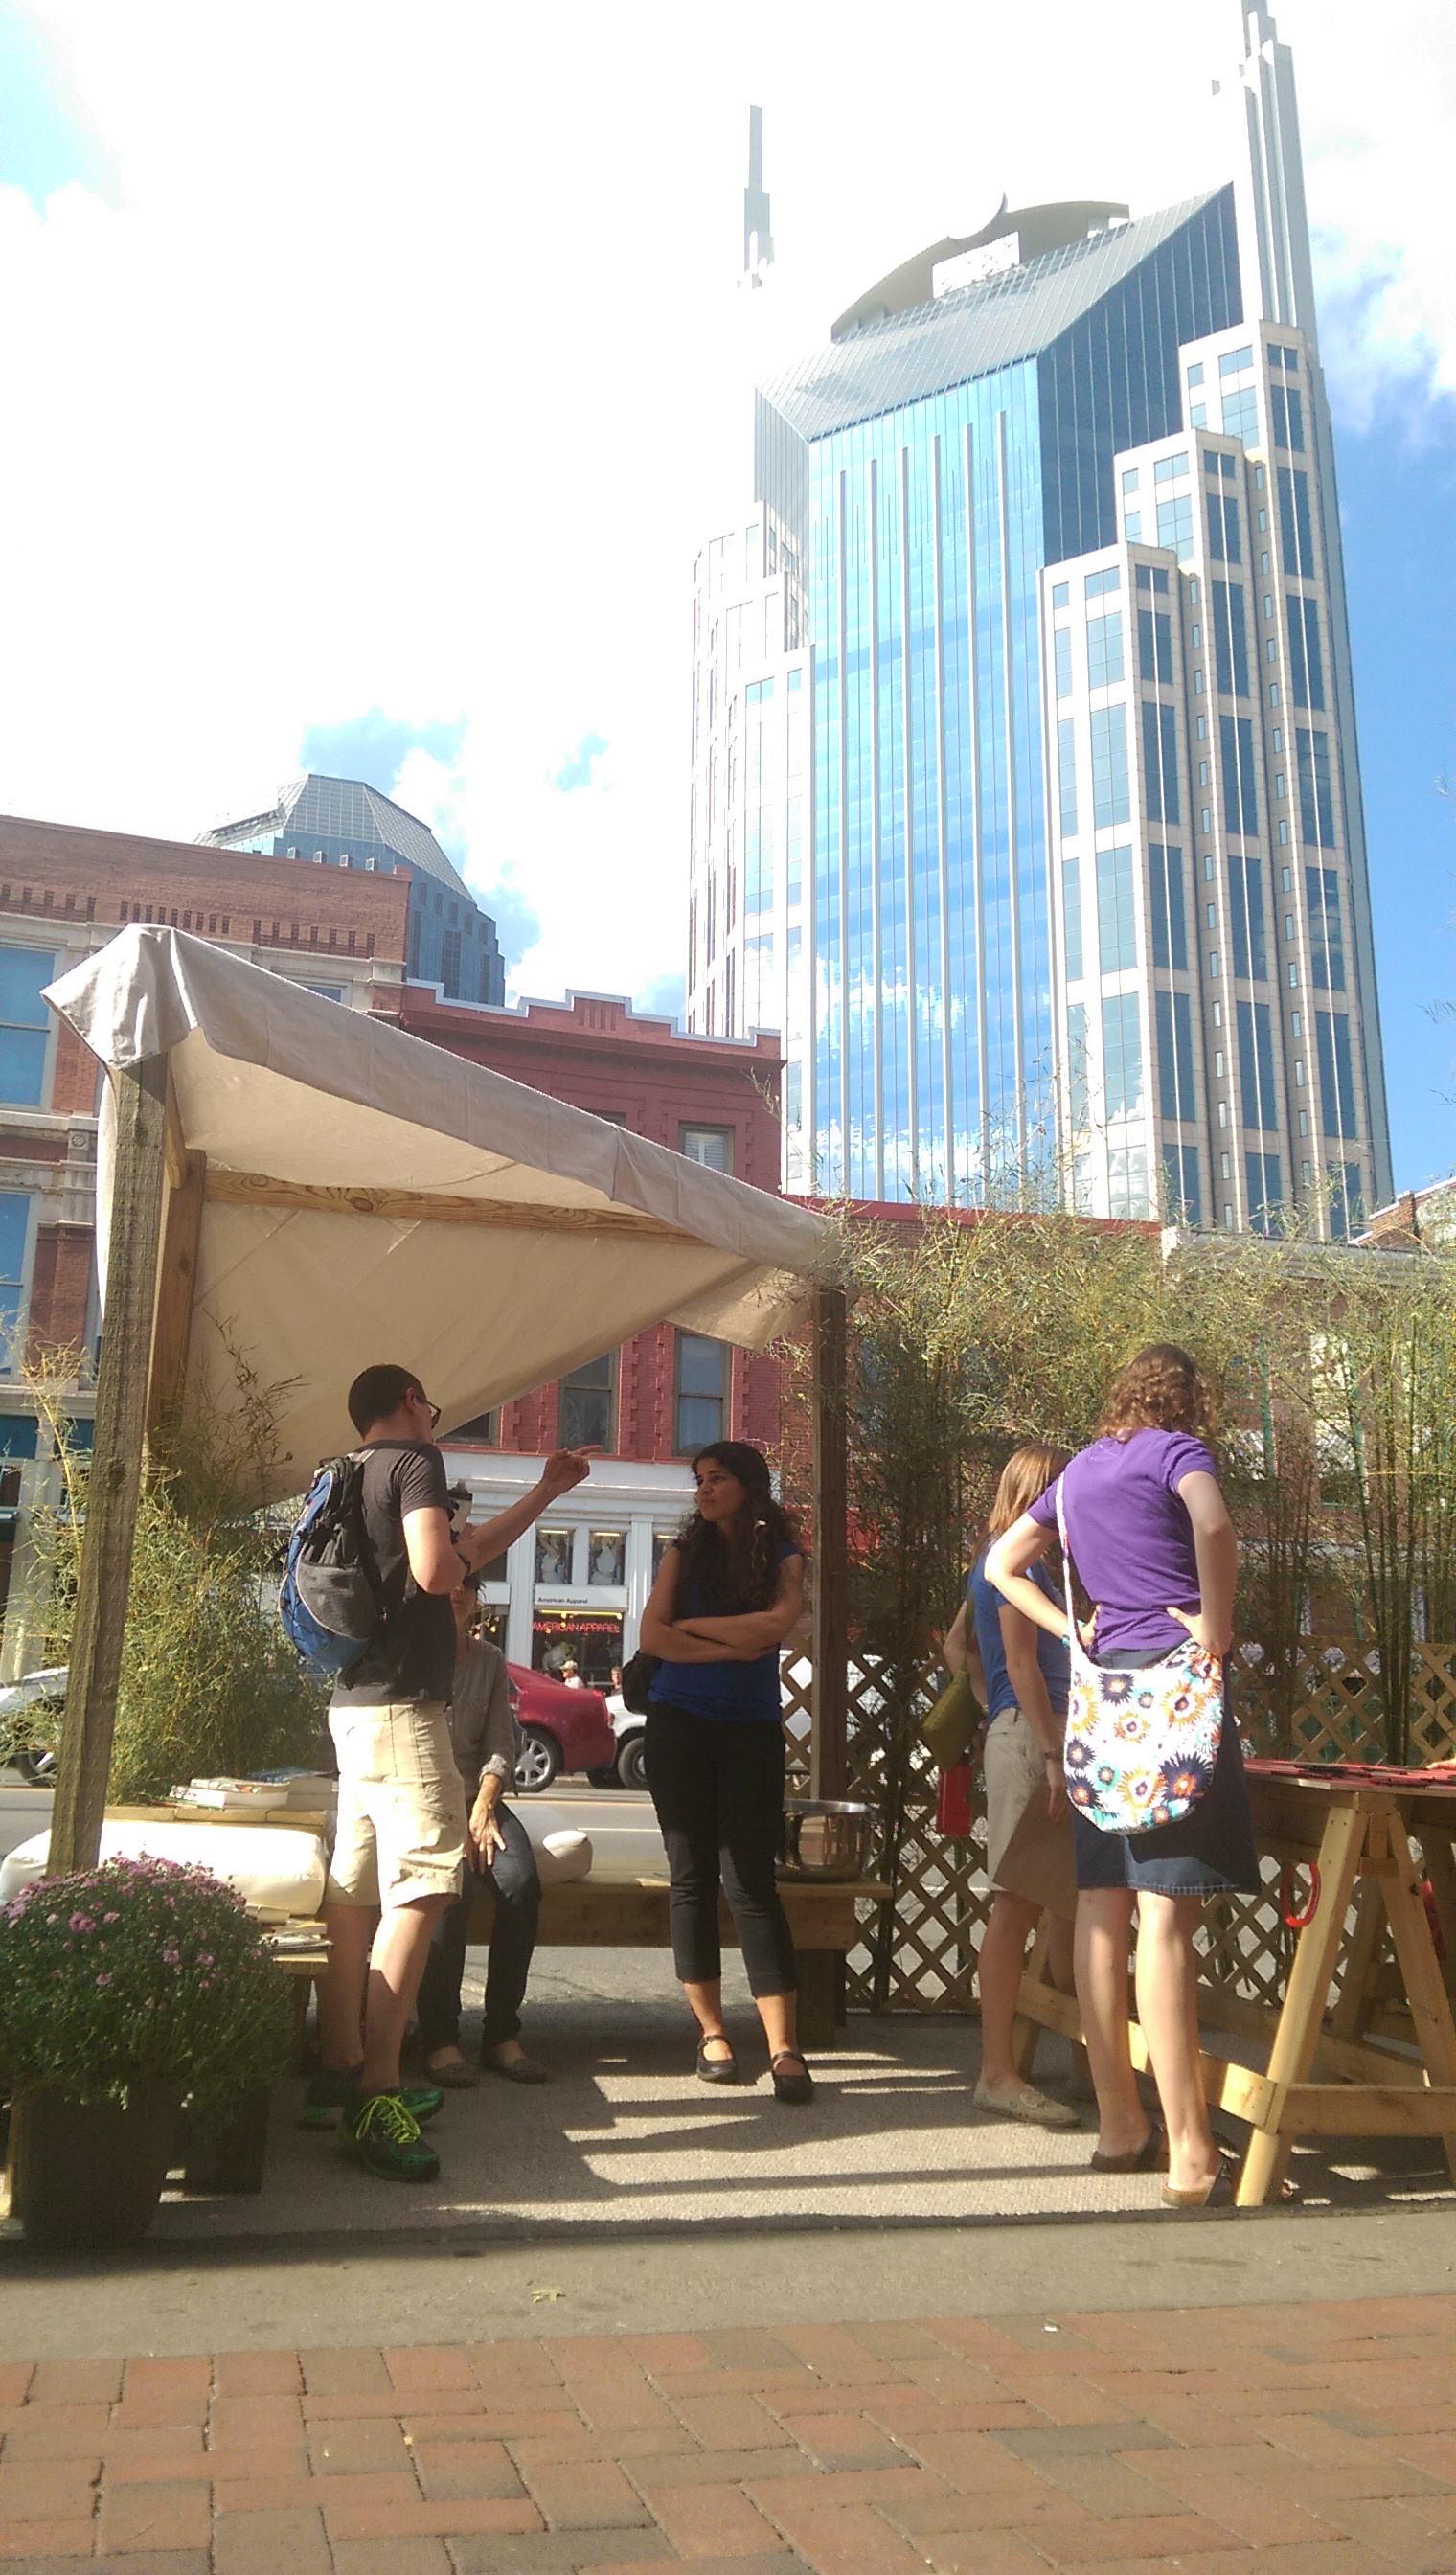 RPM's Parking Space at Nashville's 2014 Park(ing) Day